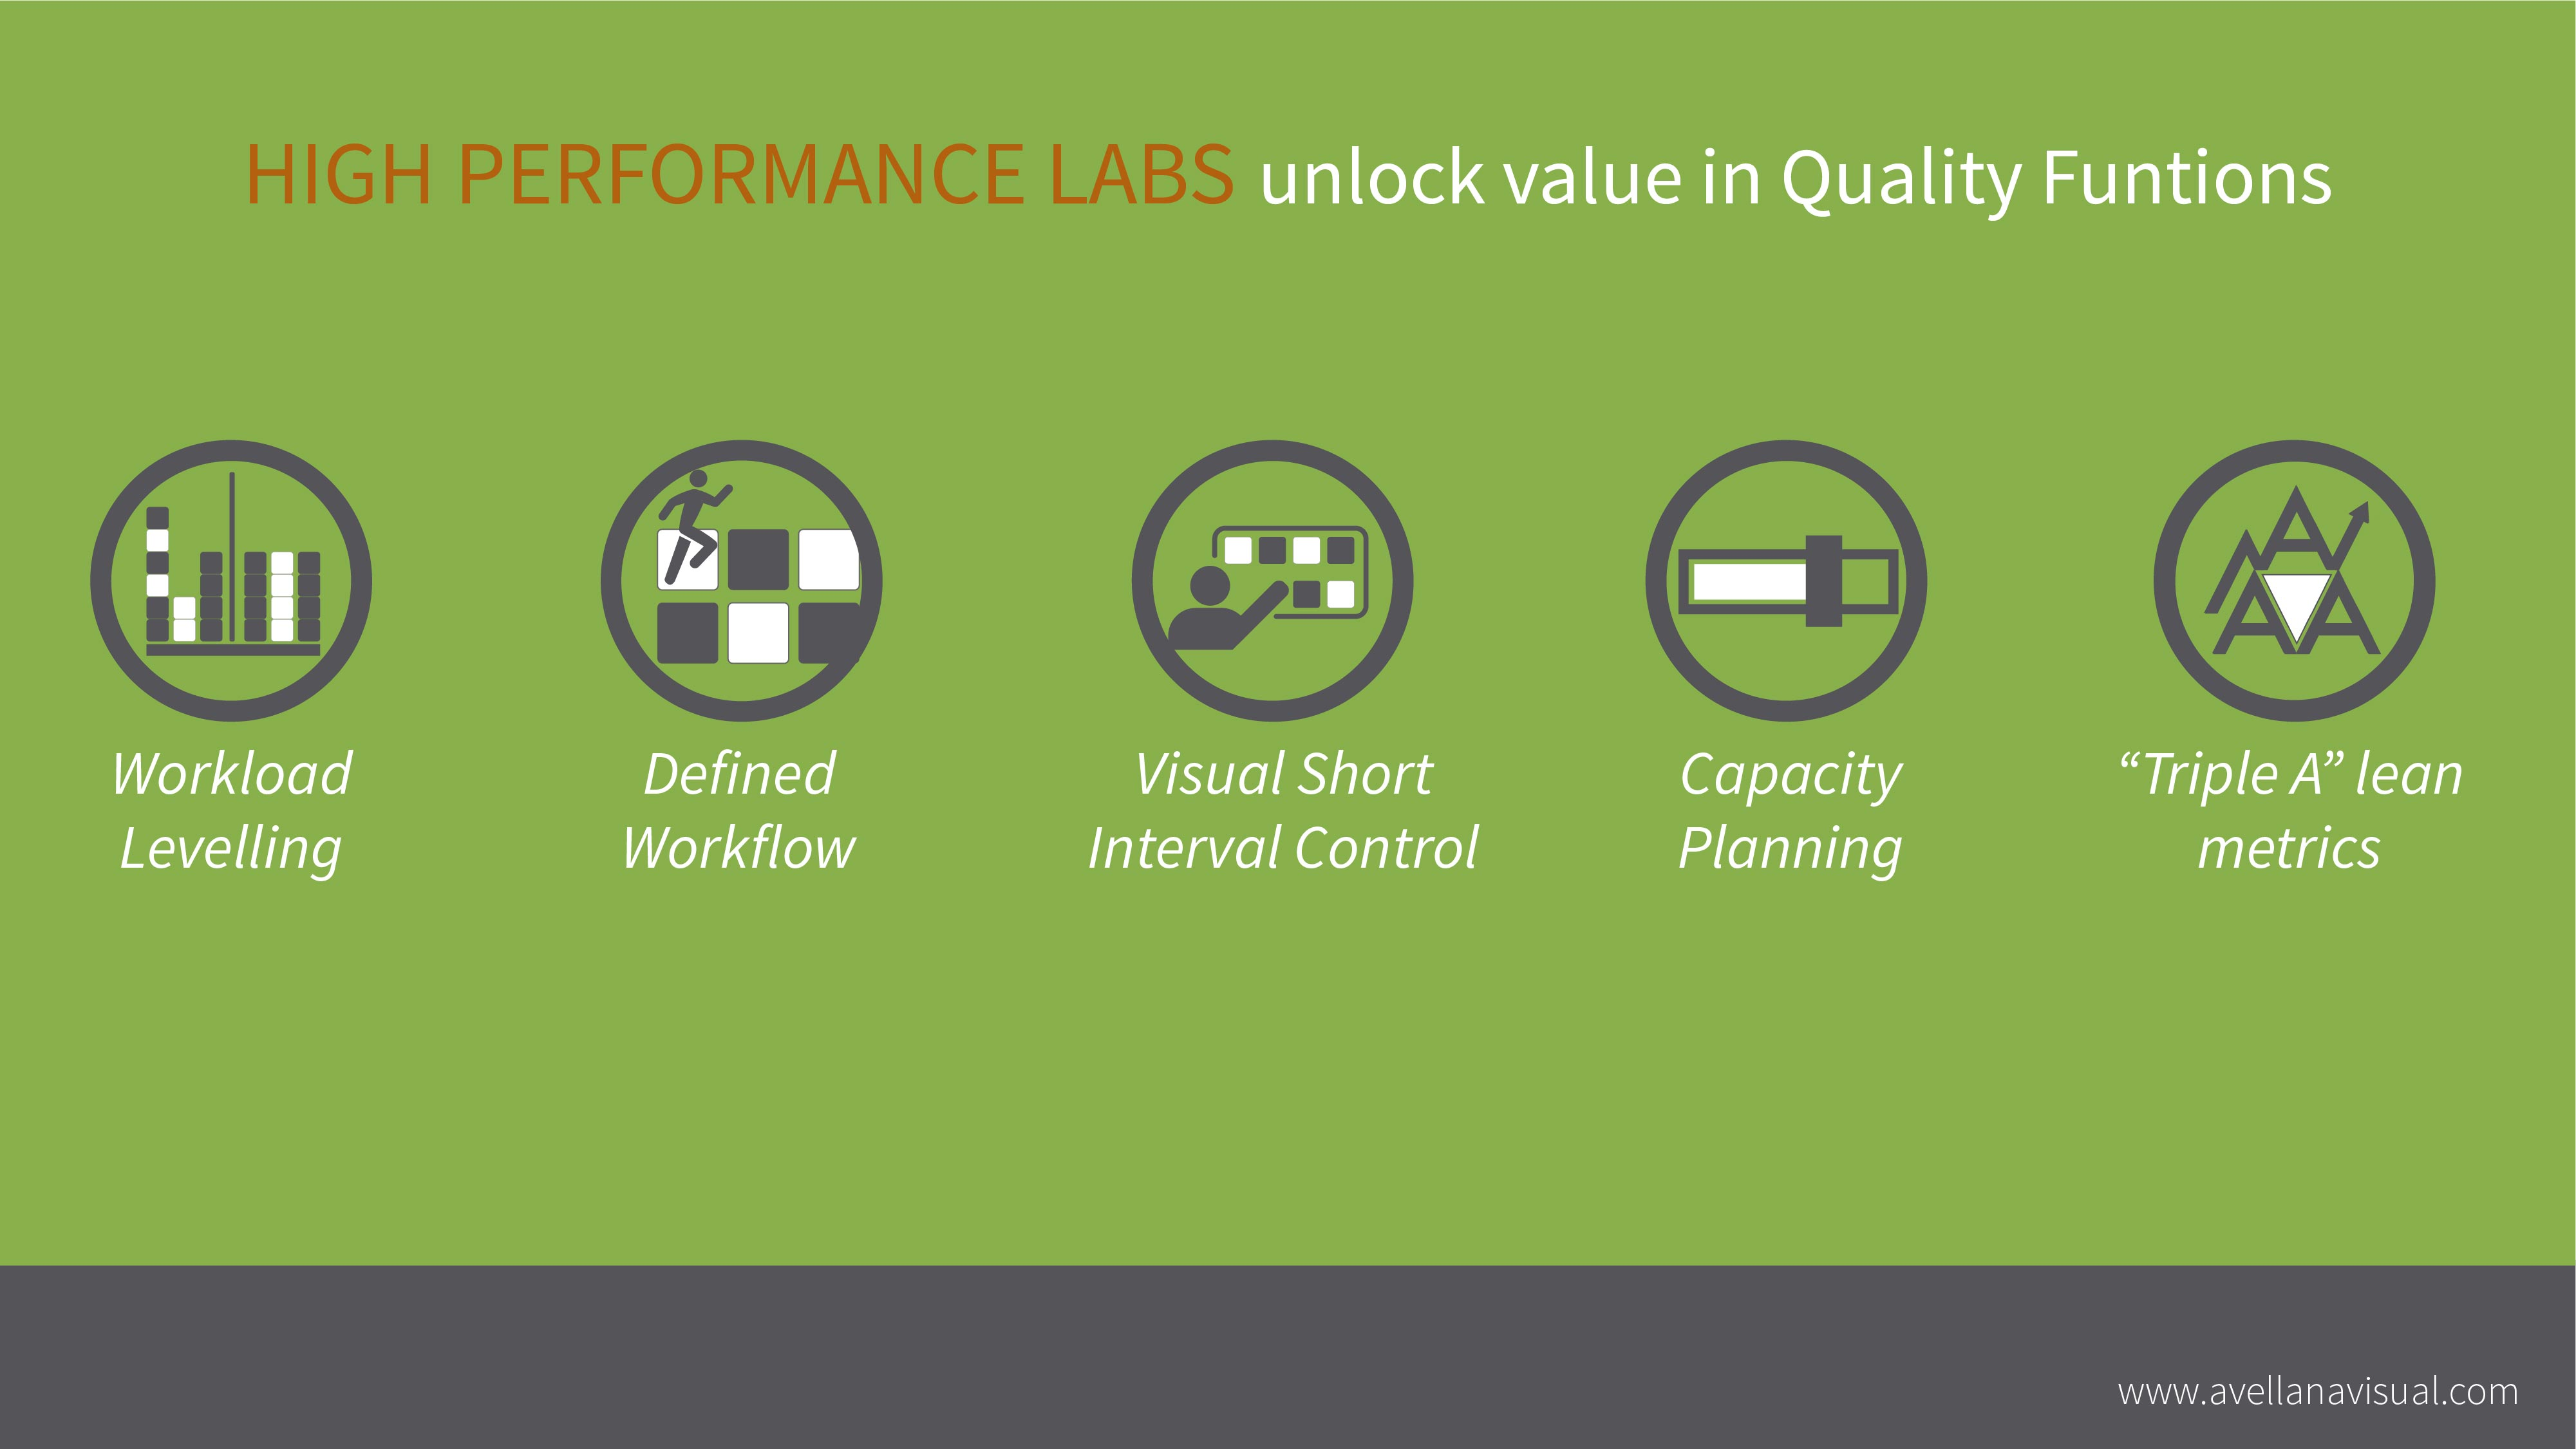 07 High Performance Labs unlock value